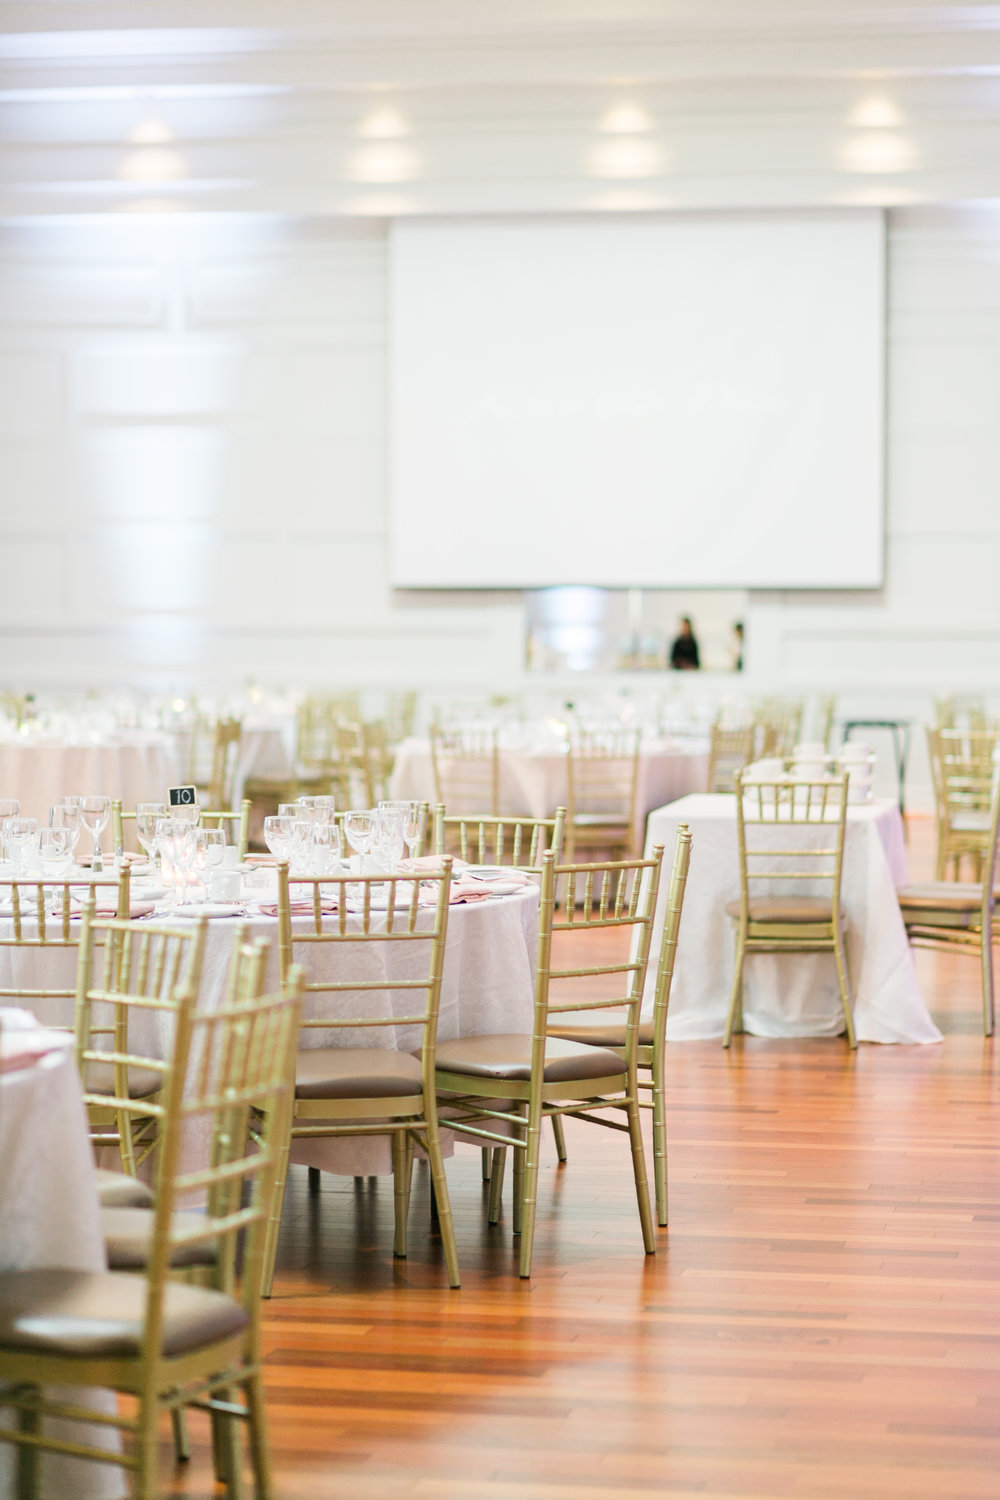 Toronto Fine Art Photographer - Terrace Banquet Hall Wedding - Reception-4.jpg